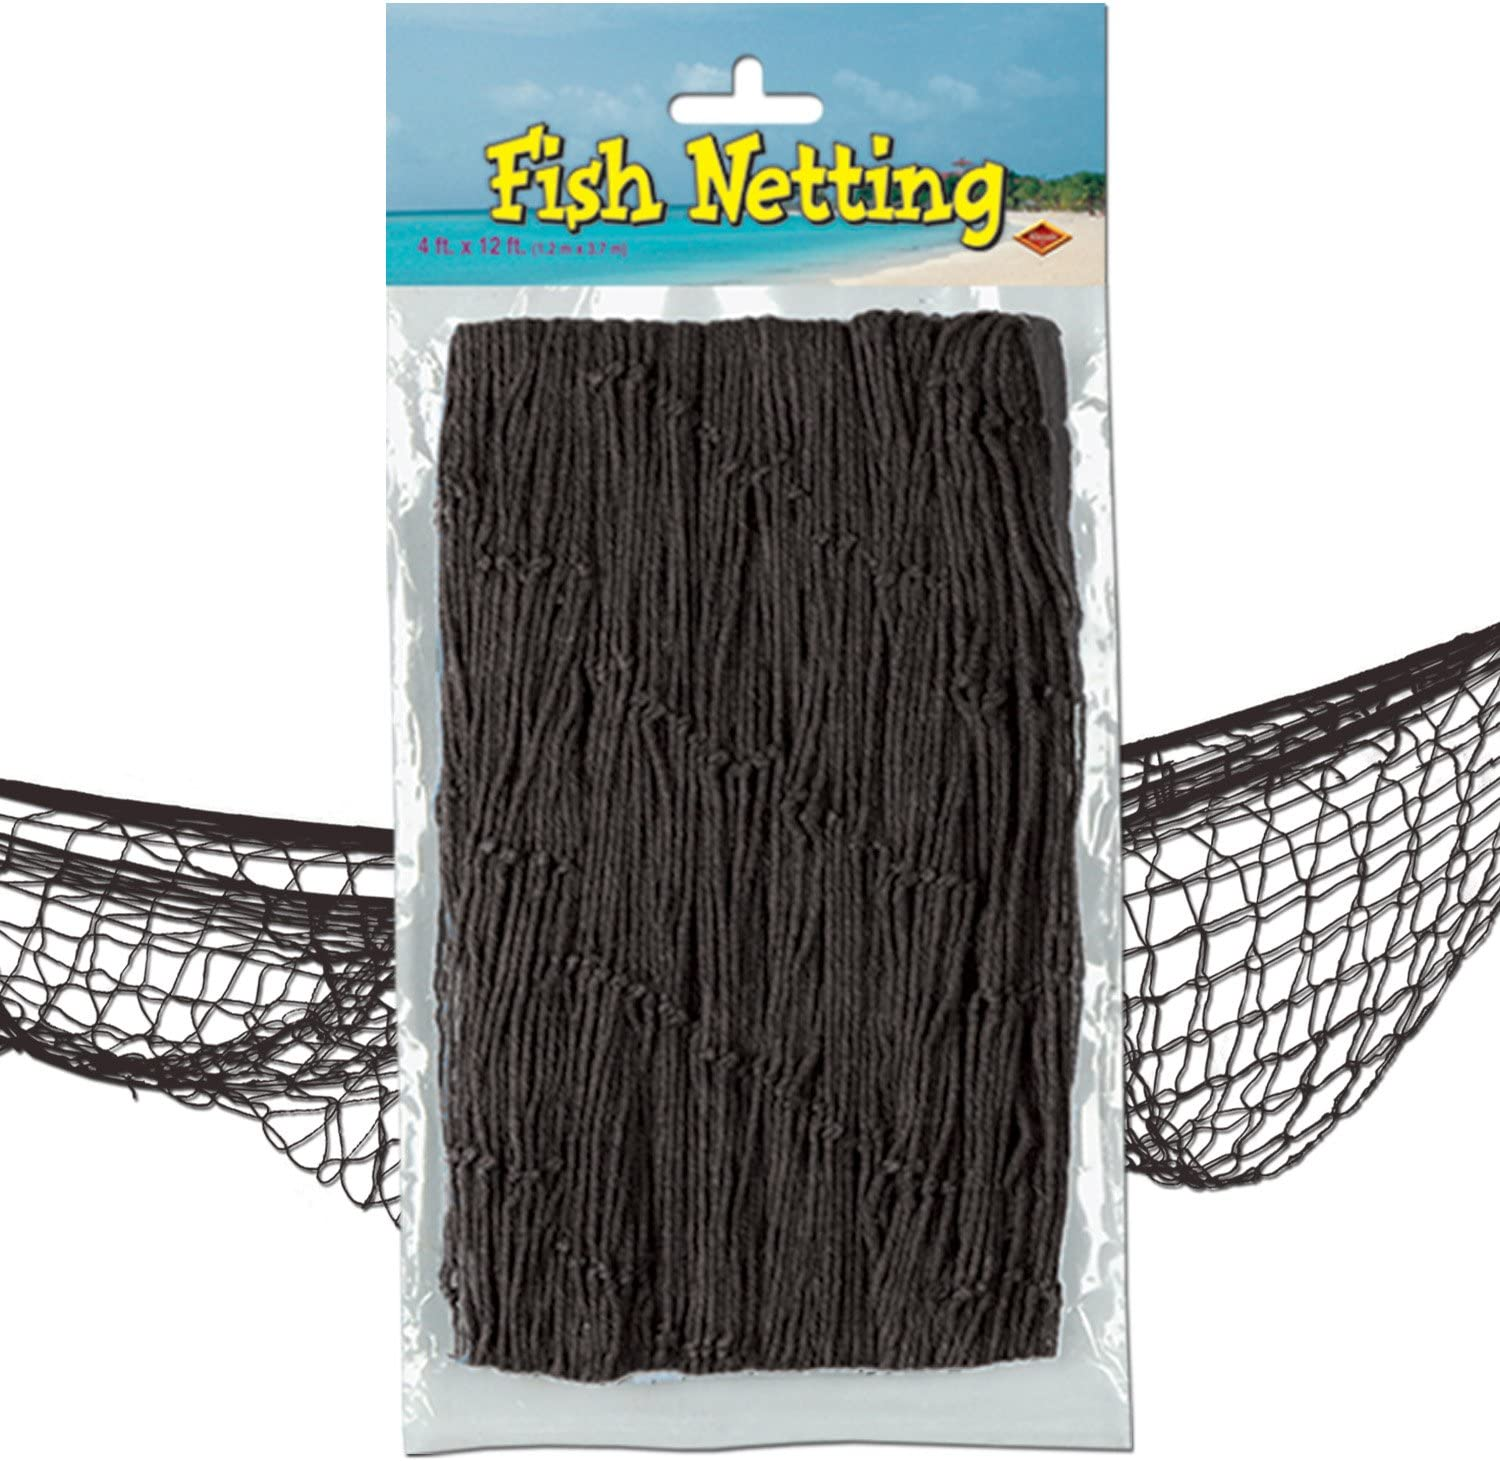 Beistle Decorative Fish Netting, 4 by 12-Feet, 1 Piece